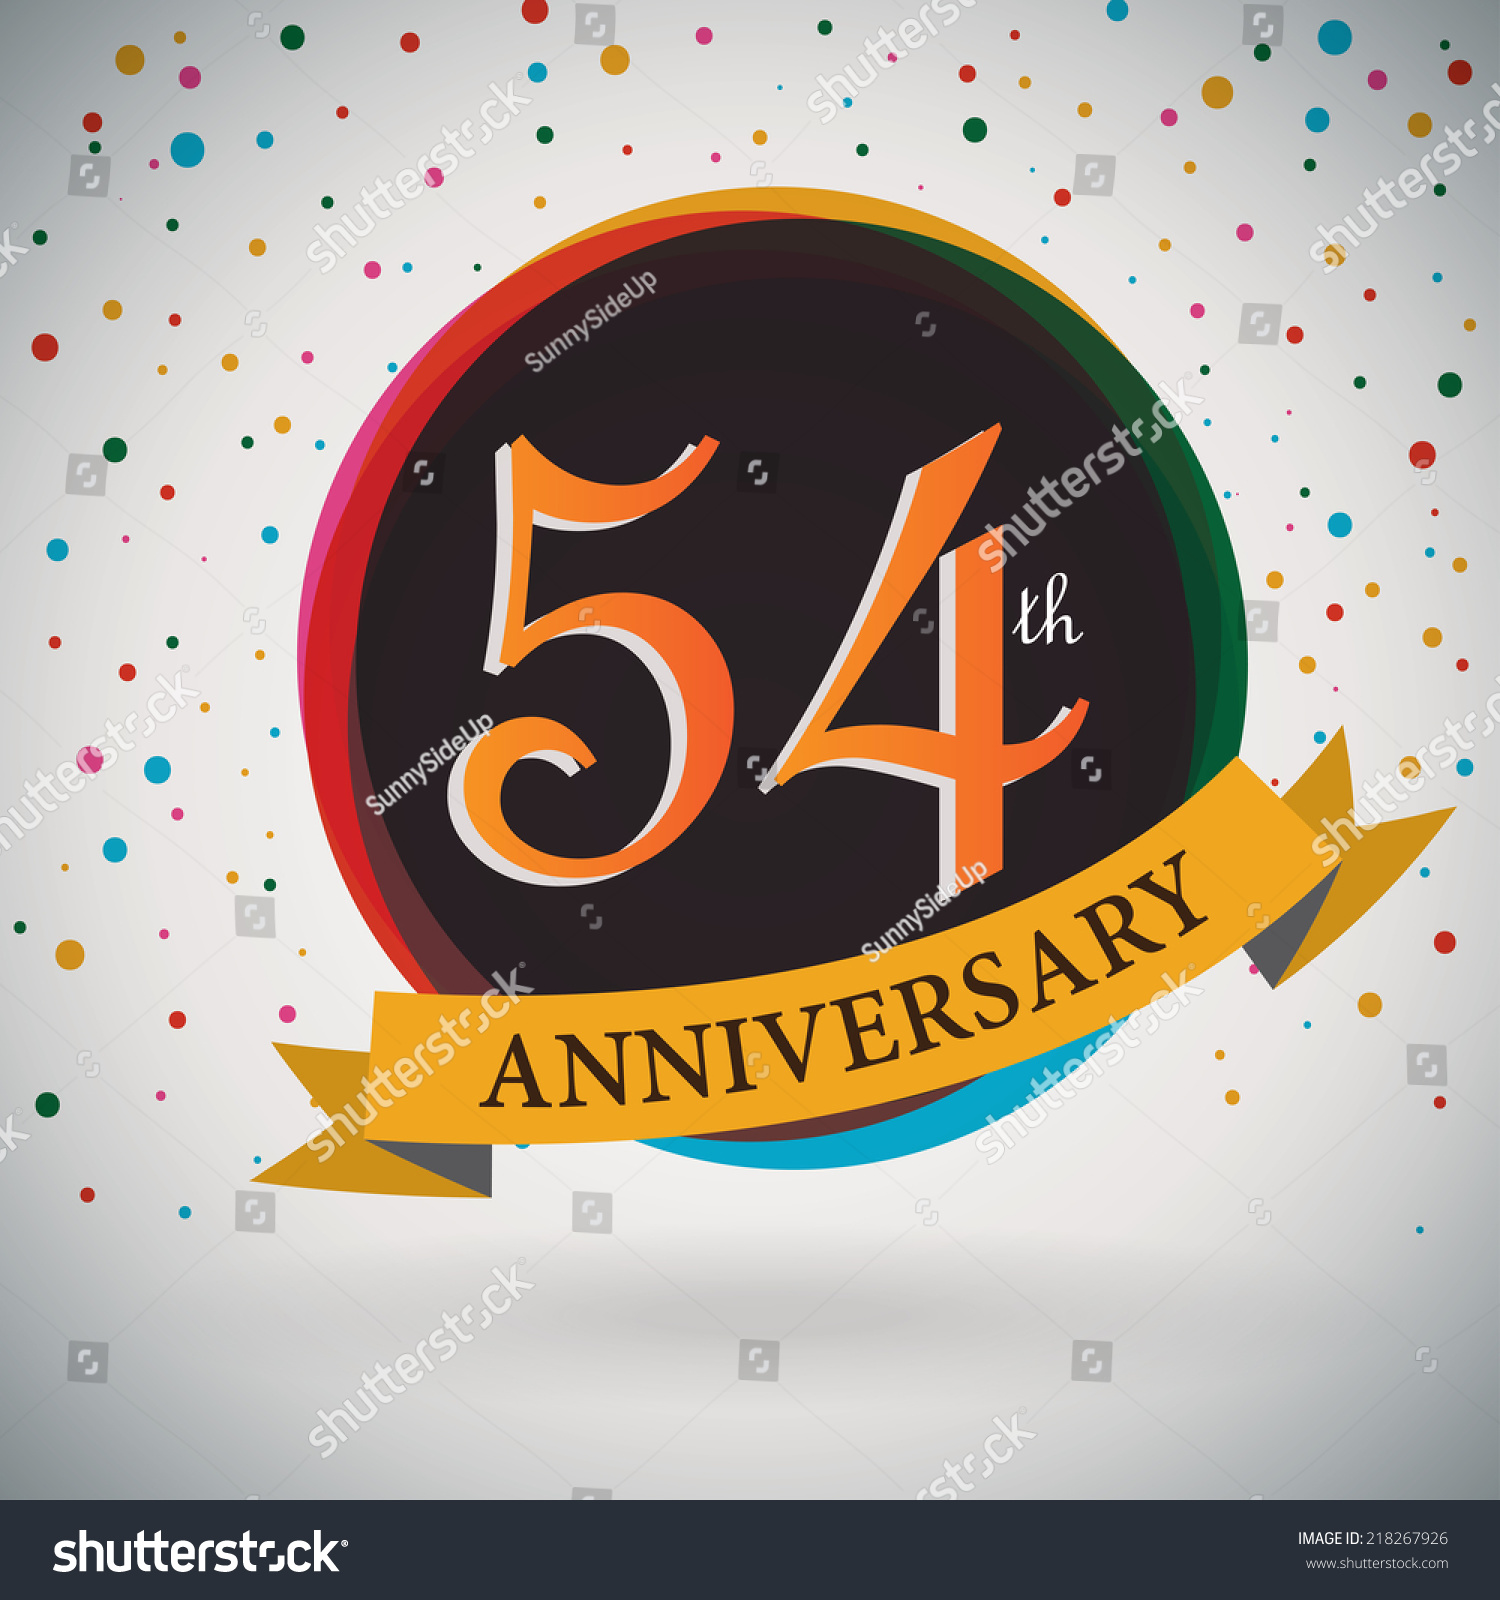 Royalty free 54th anniversary poster template 218267926 stock 54th anniversary poster template design in retro style vector background 218267926 biocorpaavc Gallery